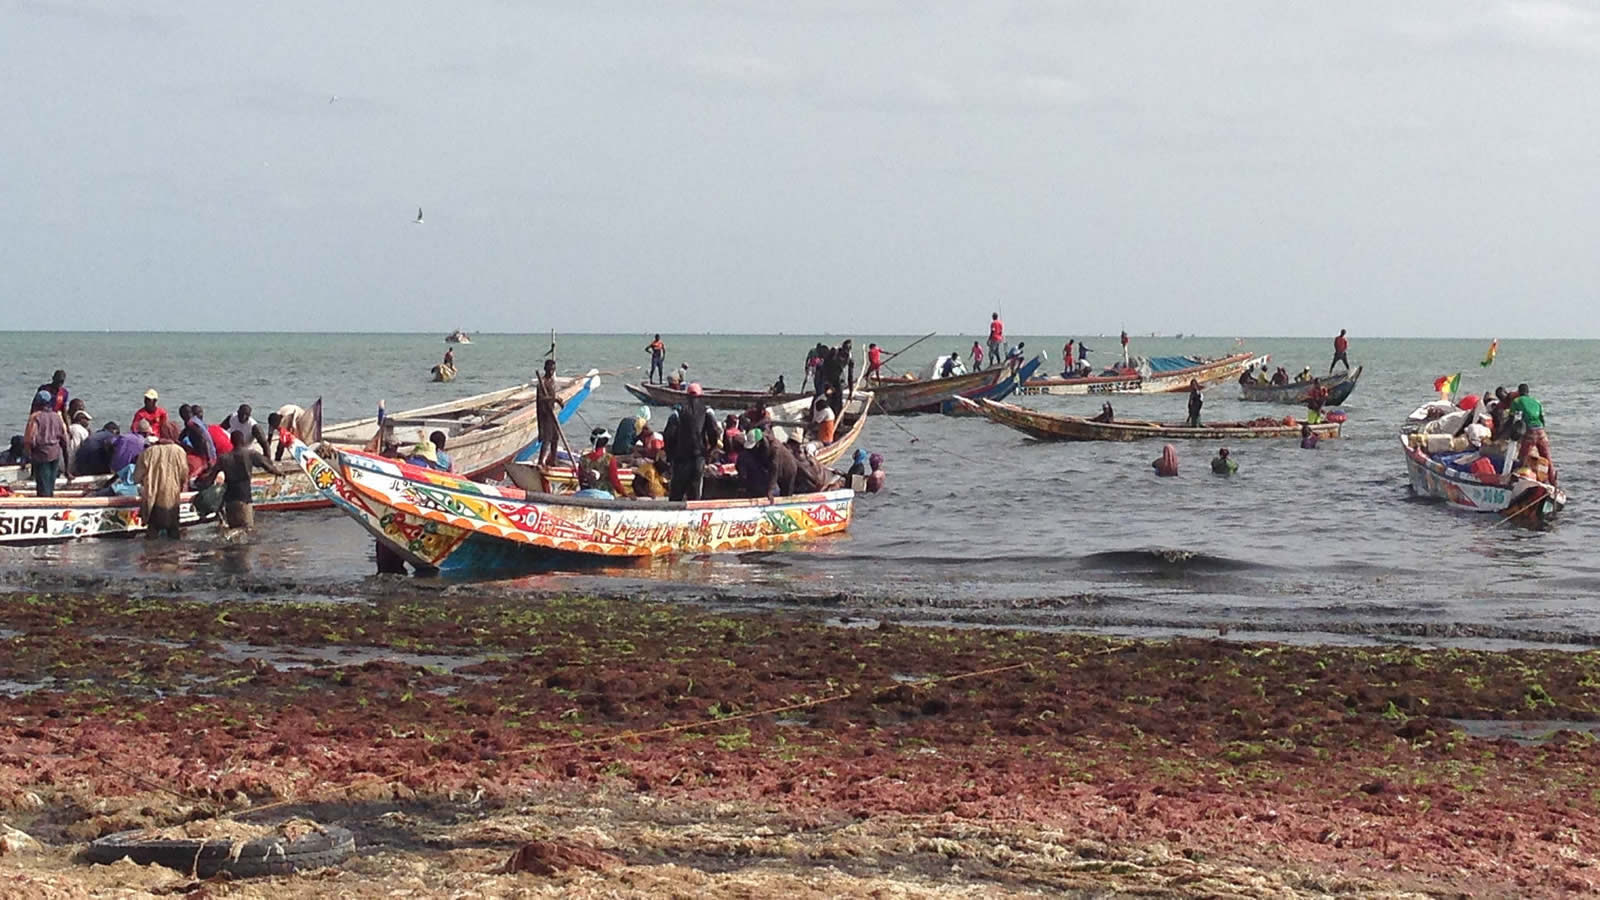 Colorful Boats on the Shoreline in Senegal